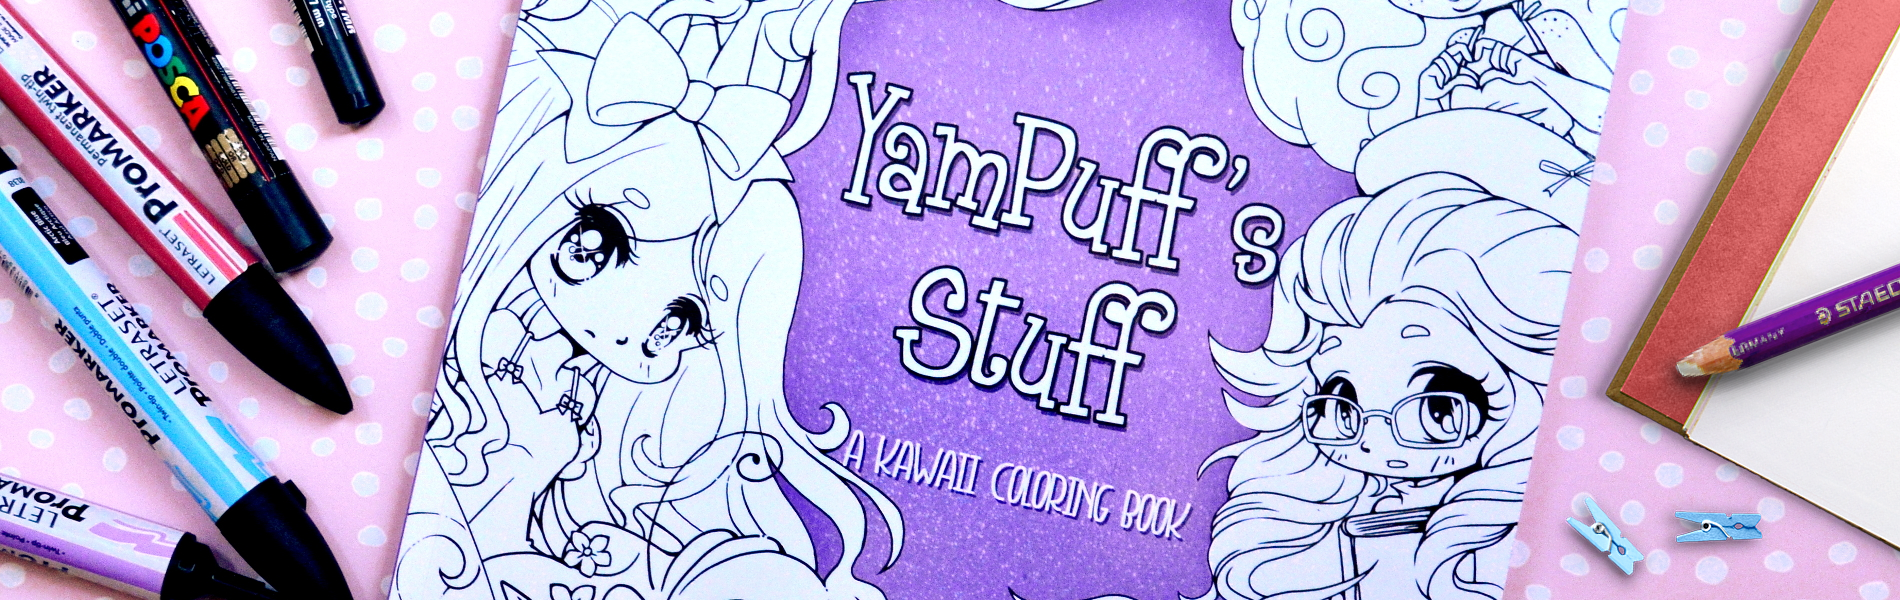 Yampuff Coloring Book And Digital Stamp Artist Yampuff S Stuff